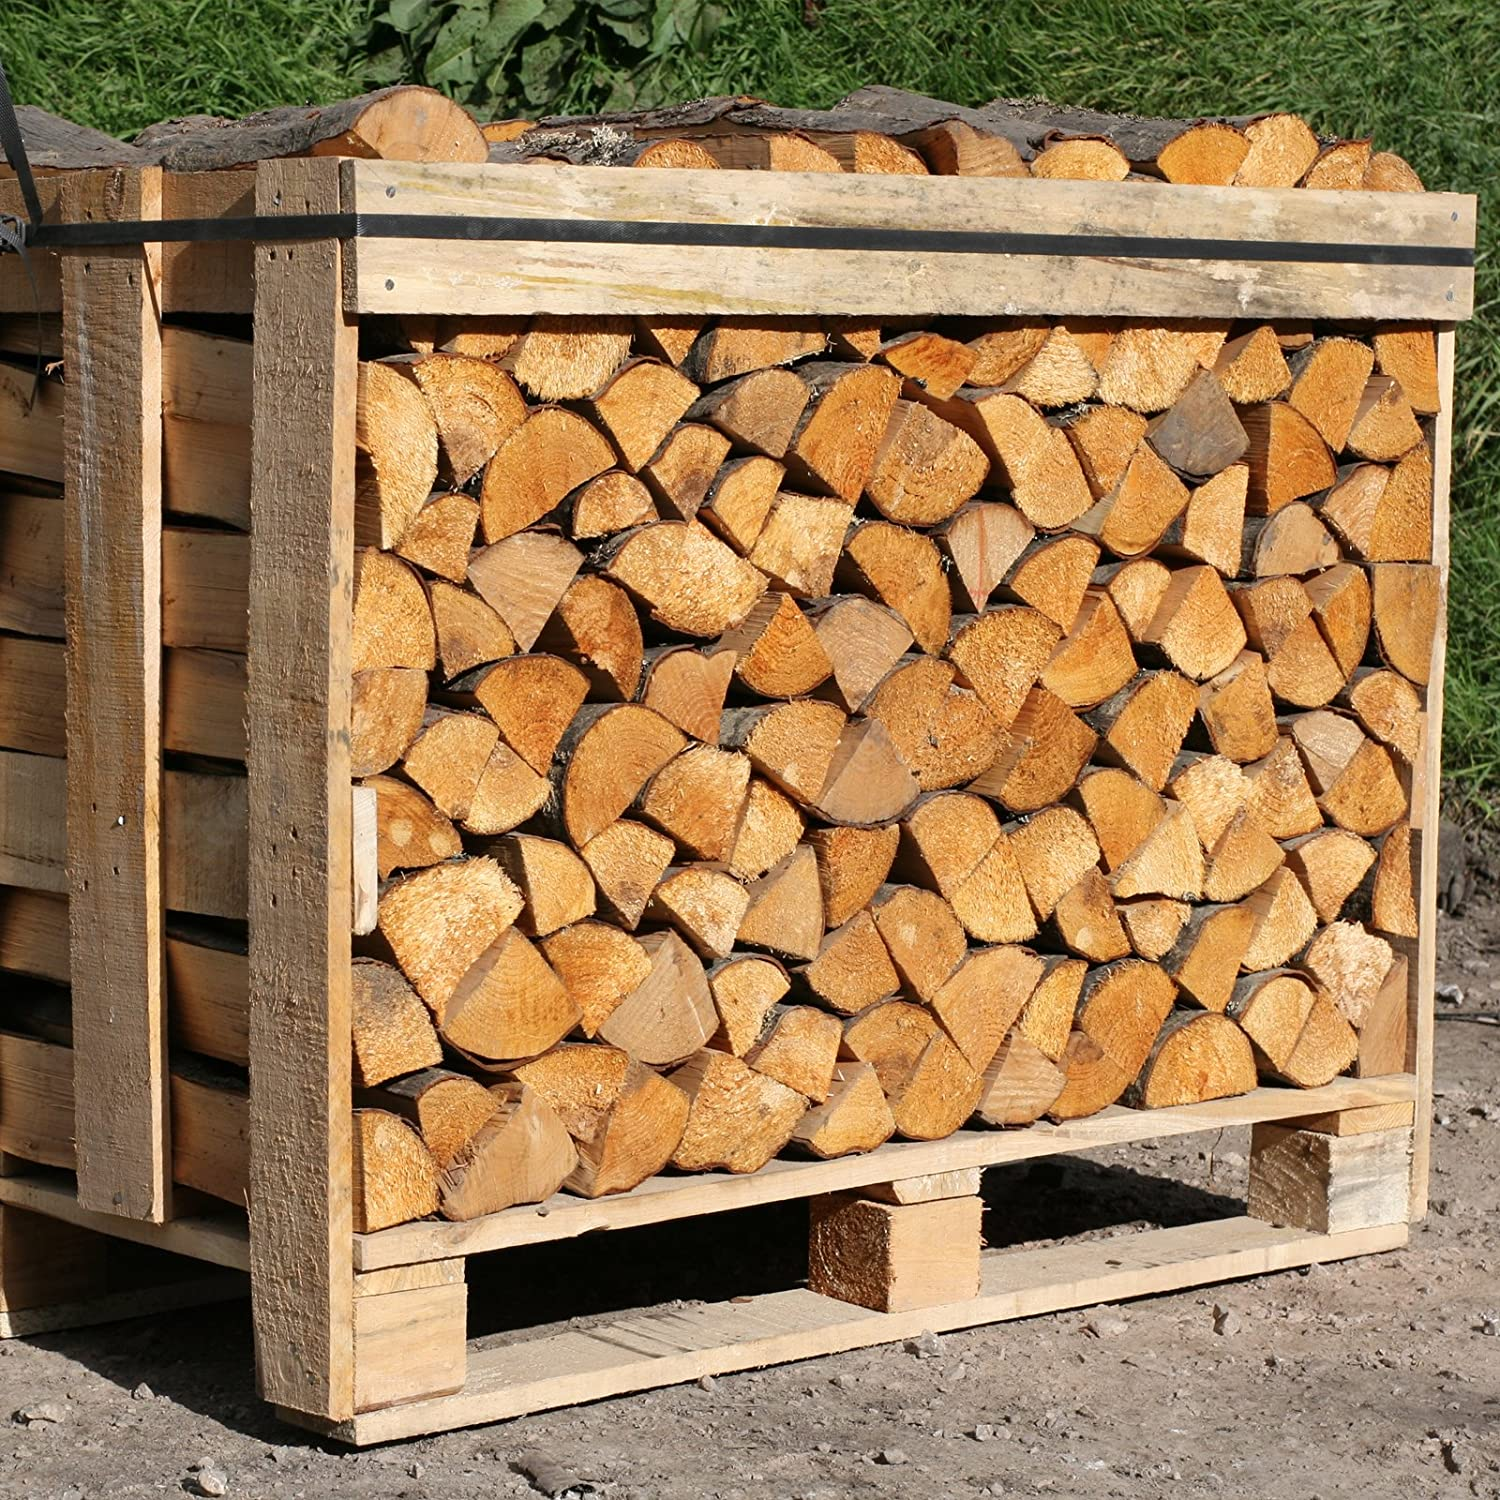 Tigerbox 15KG of 20cm Kiln Dried Red Alder Ready to Burn Logs. Ideal for Small Stoves & Wood Burners. Includes Safety Matches. Shop4accessories